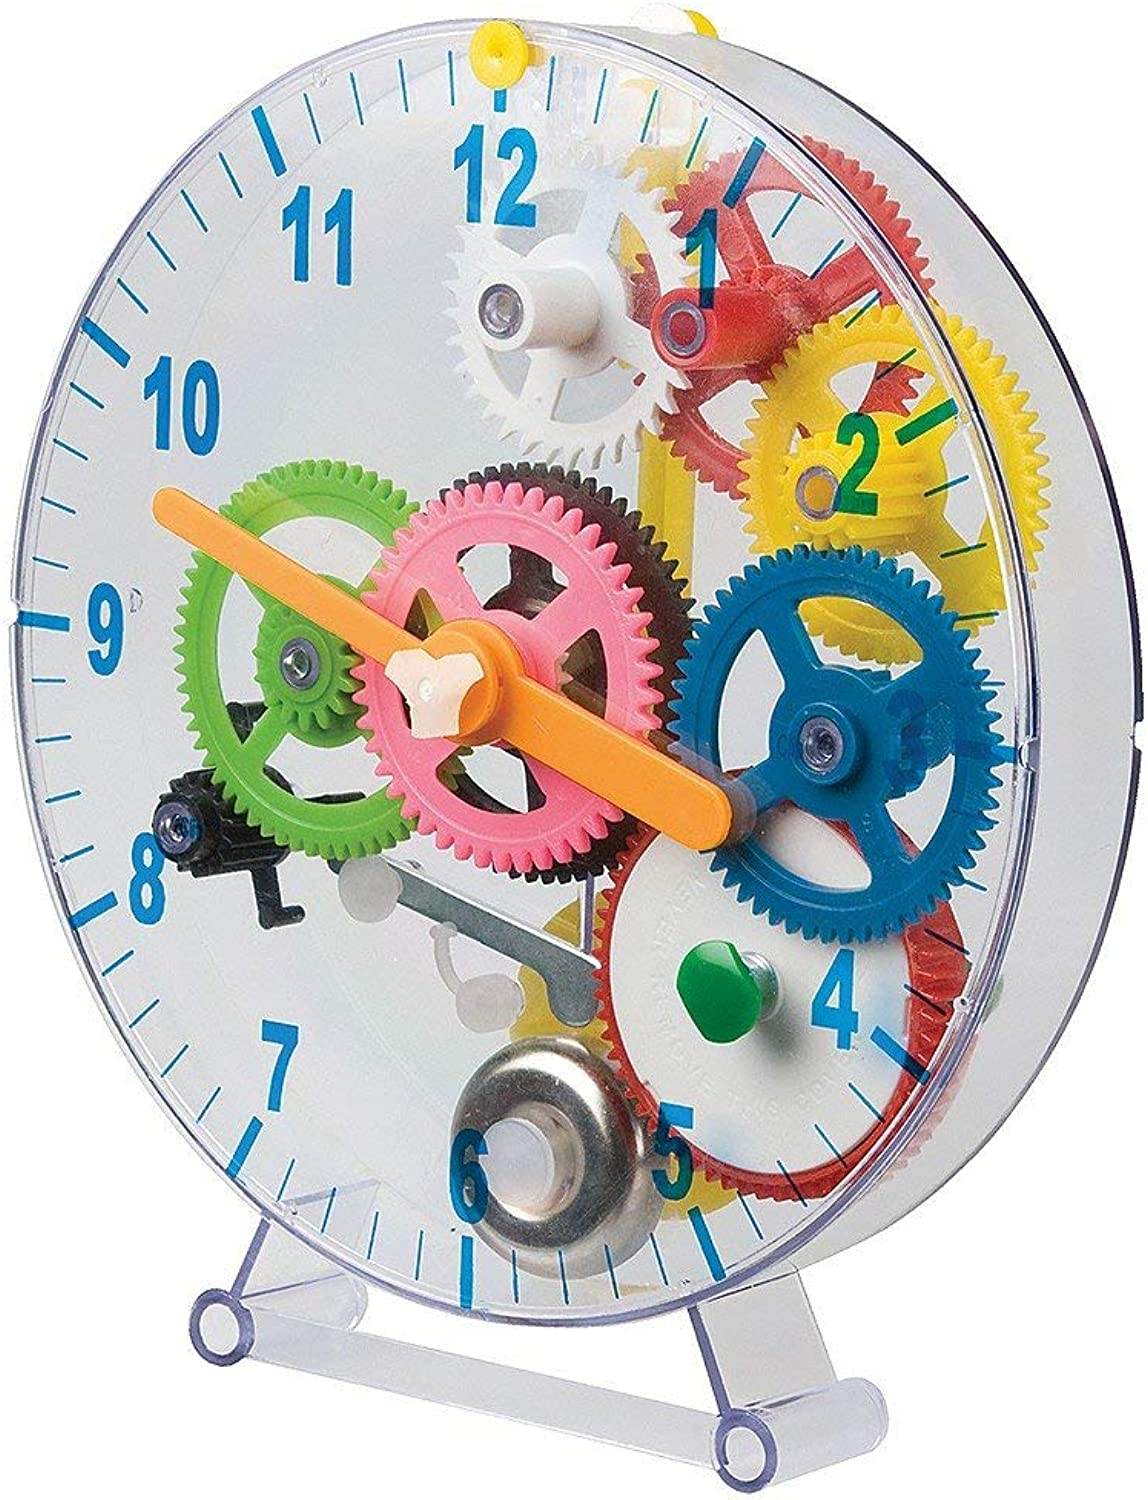 3 x Make Your Own Mechanical Clock 31 Pieces